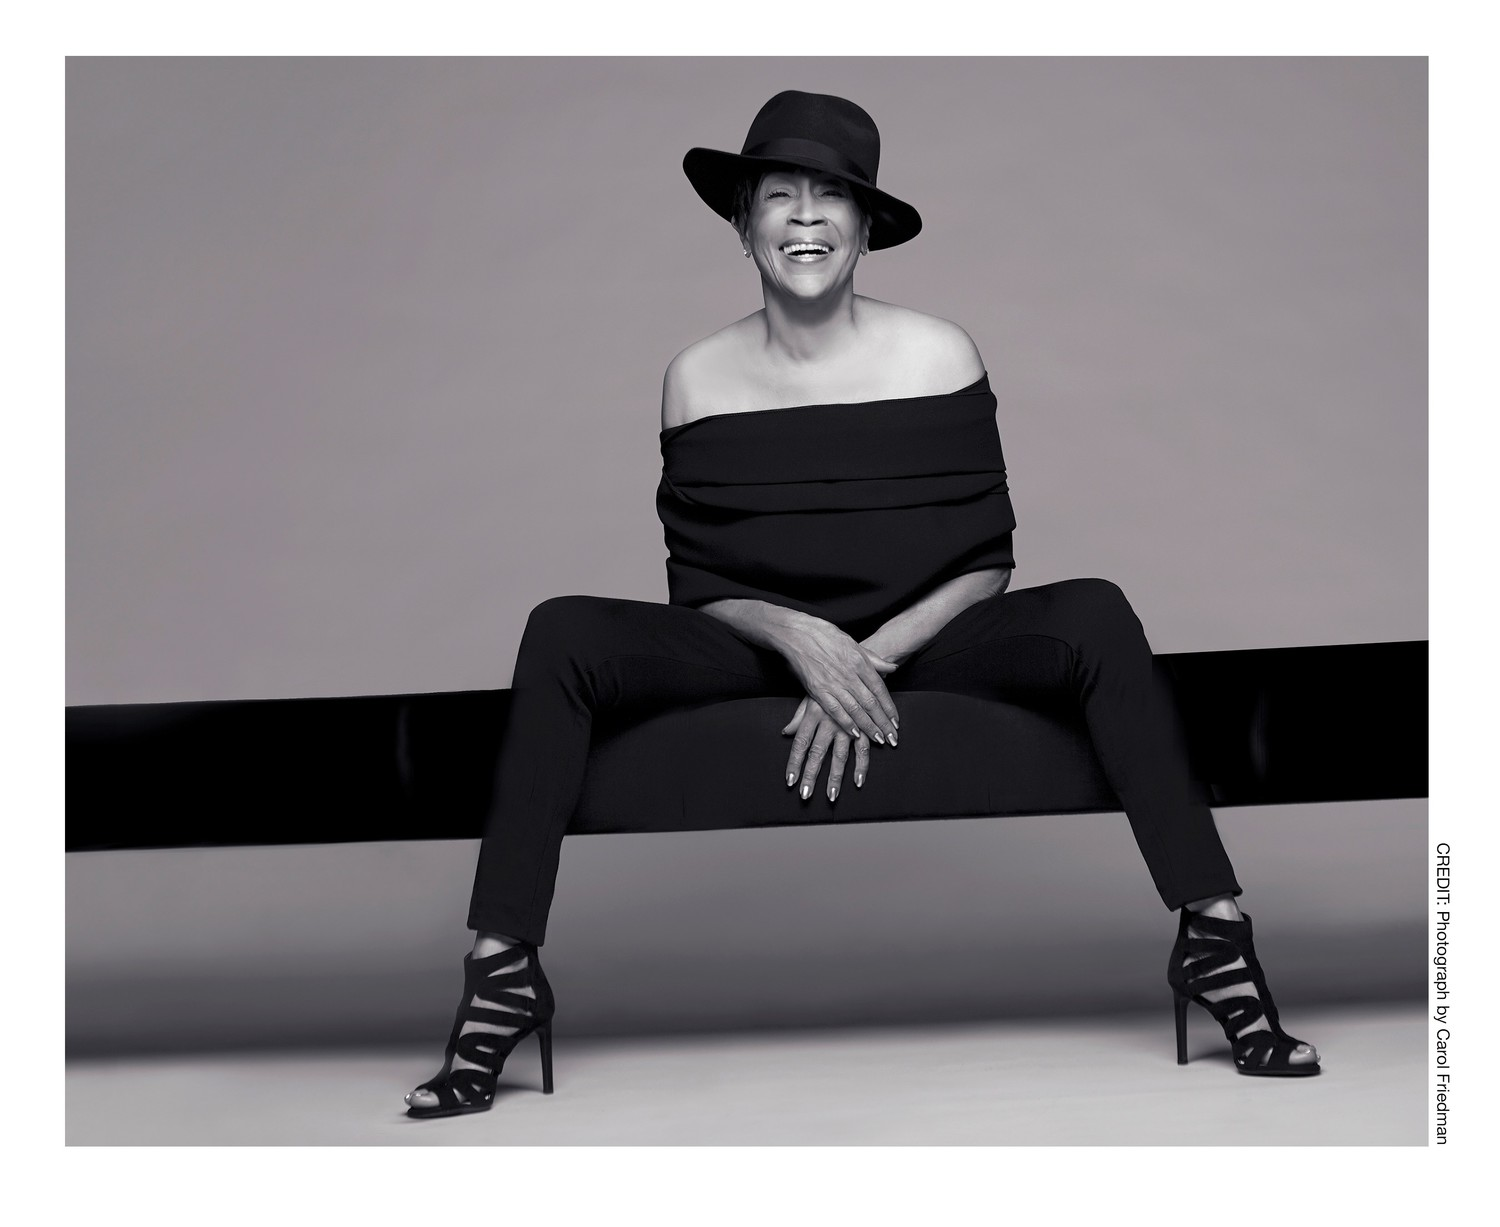 Bettye LaVette brings her soul vibe to the Landmark on Main Street stage on Dec. 16.